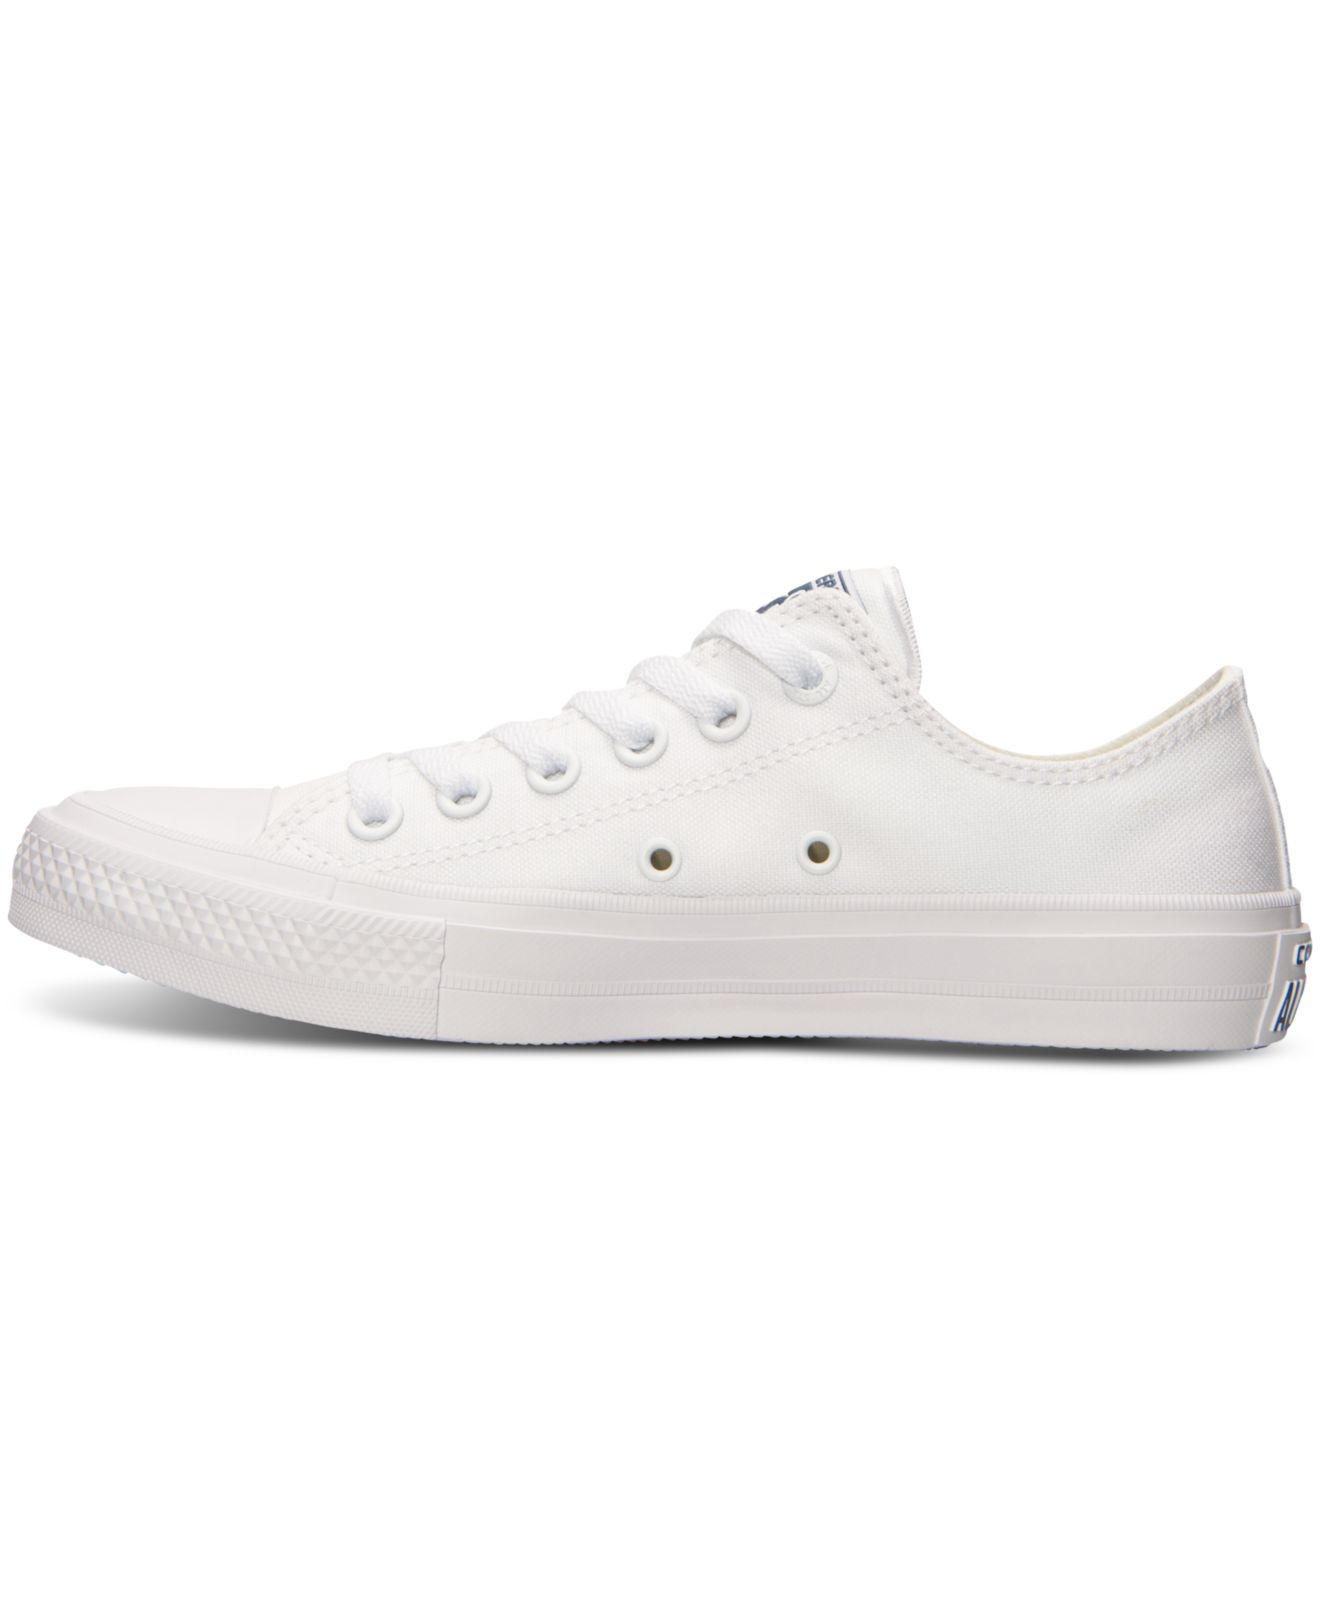 0116e60f16e3 Lyst - Converse Women s Chuck Taylor All Star Ii Ox Casual Sneakers ...